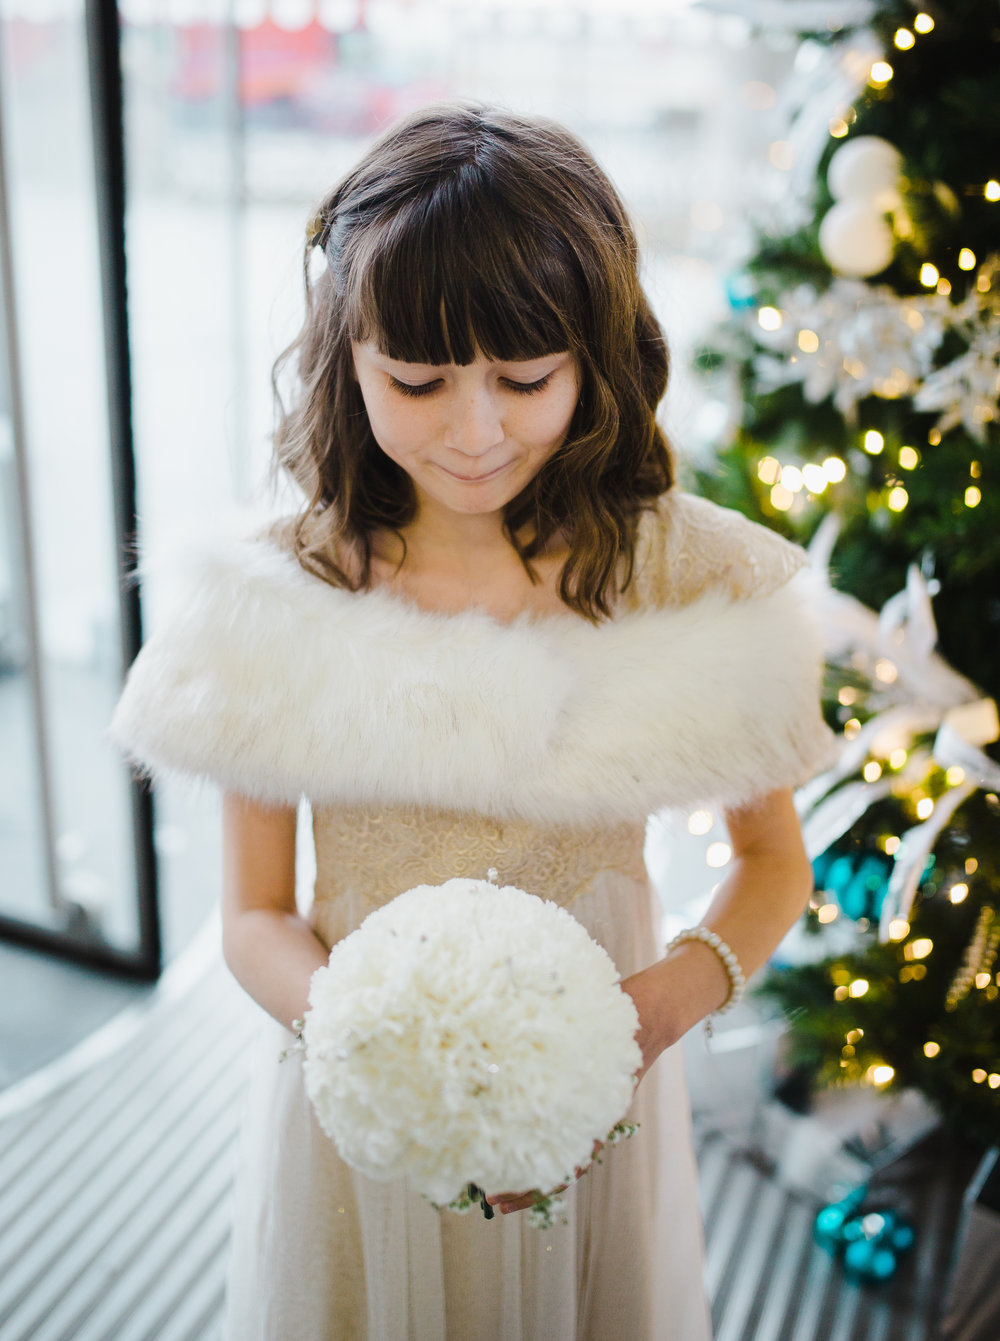 The young bridesmaid holding the flower bouquet- Christmas themed wedding at the liver building